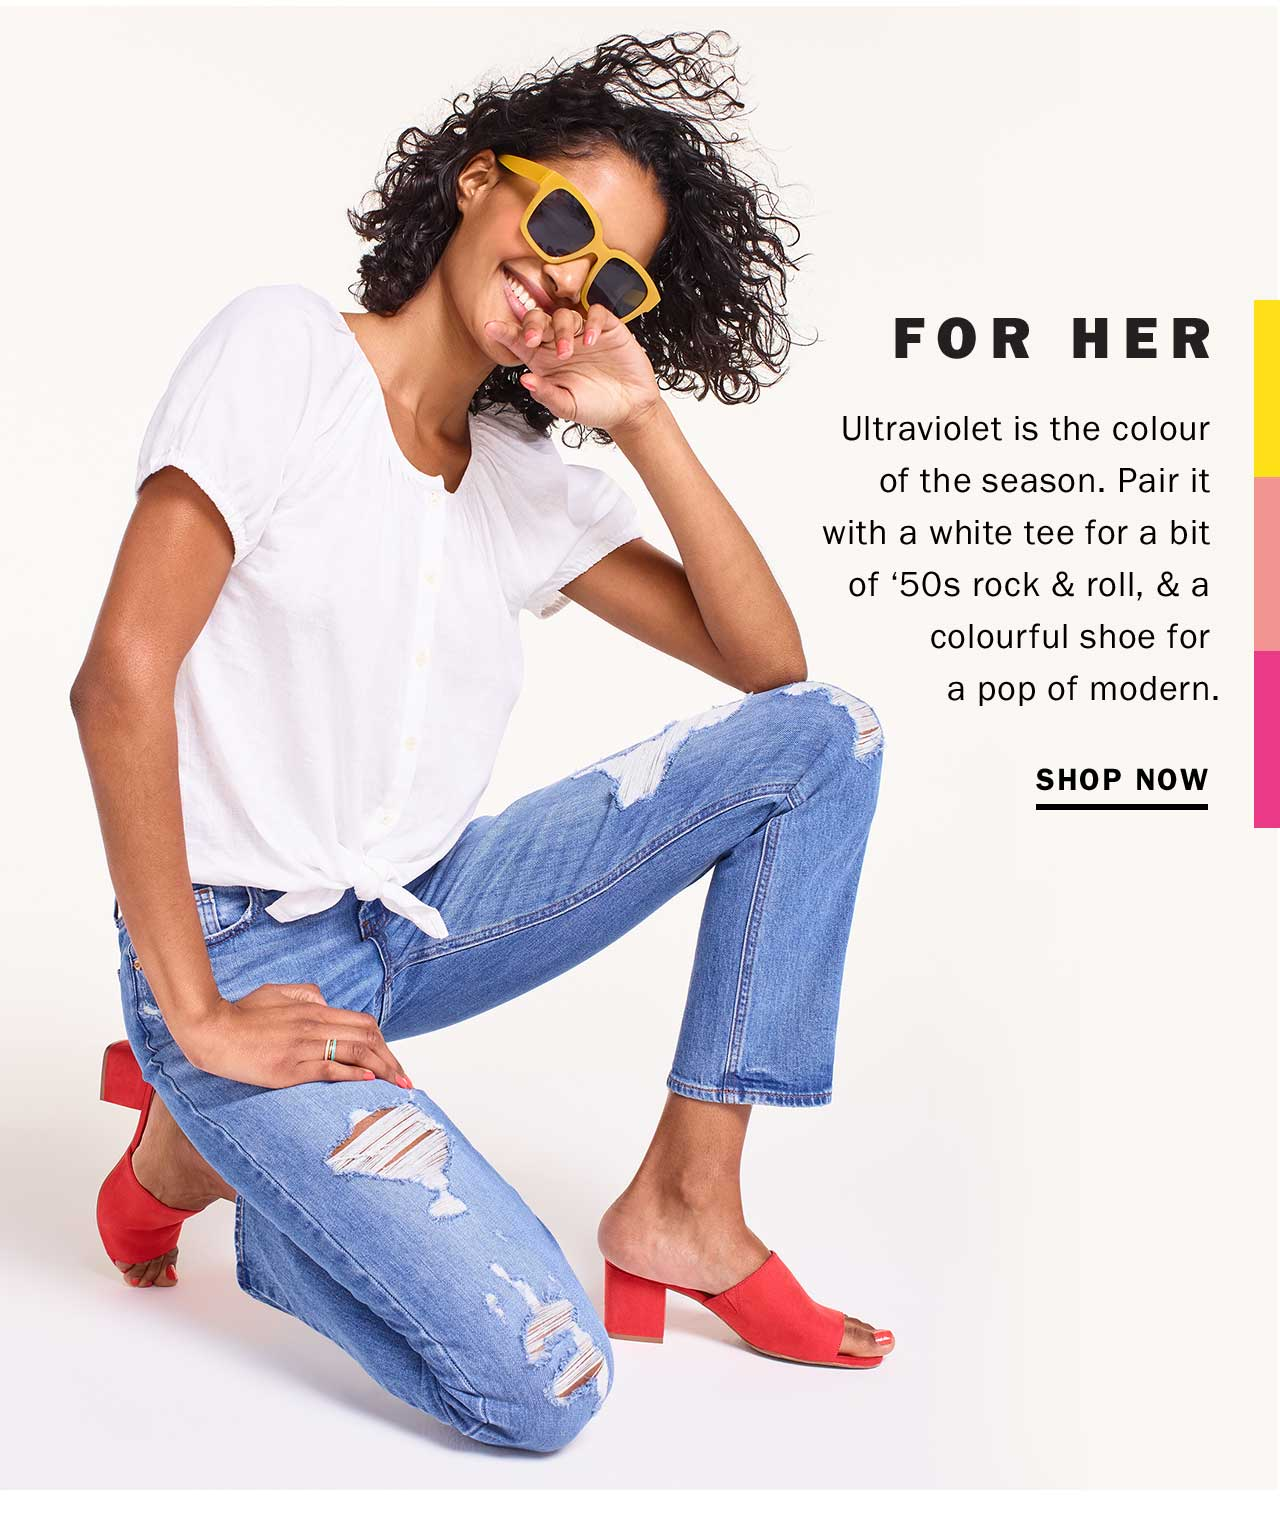 FOR HER | SHOP NOW